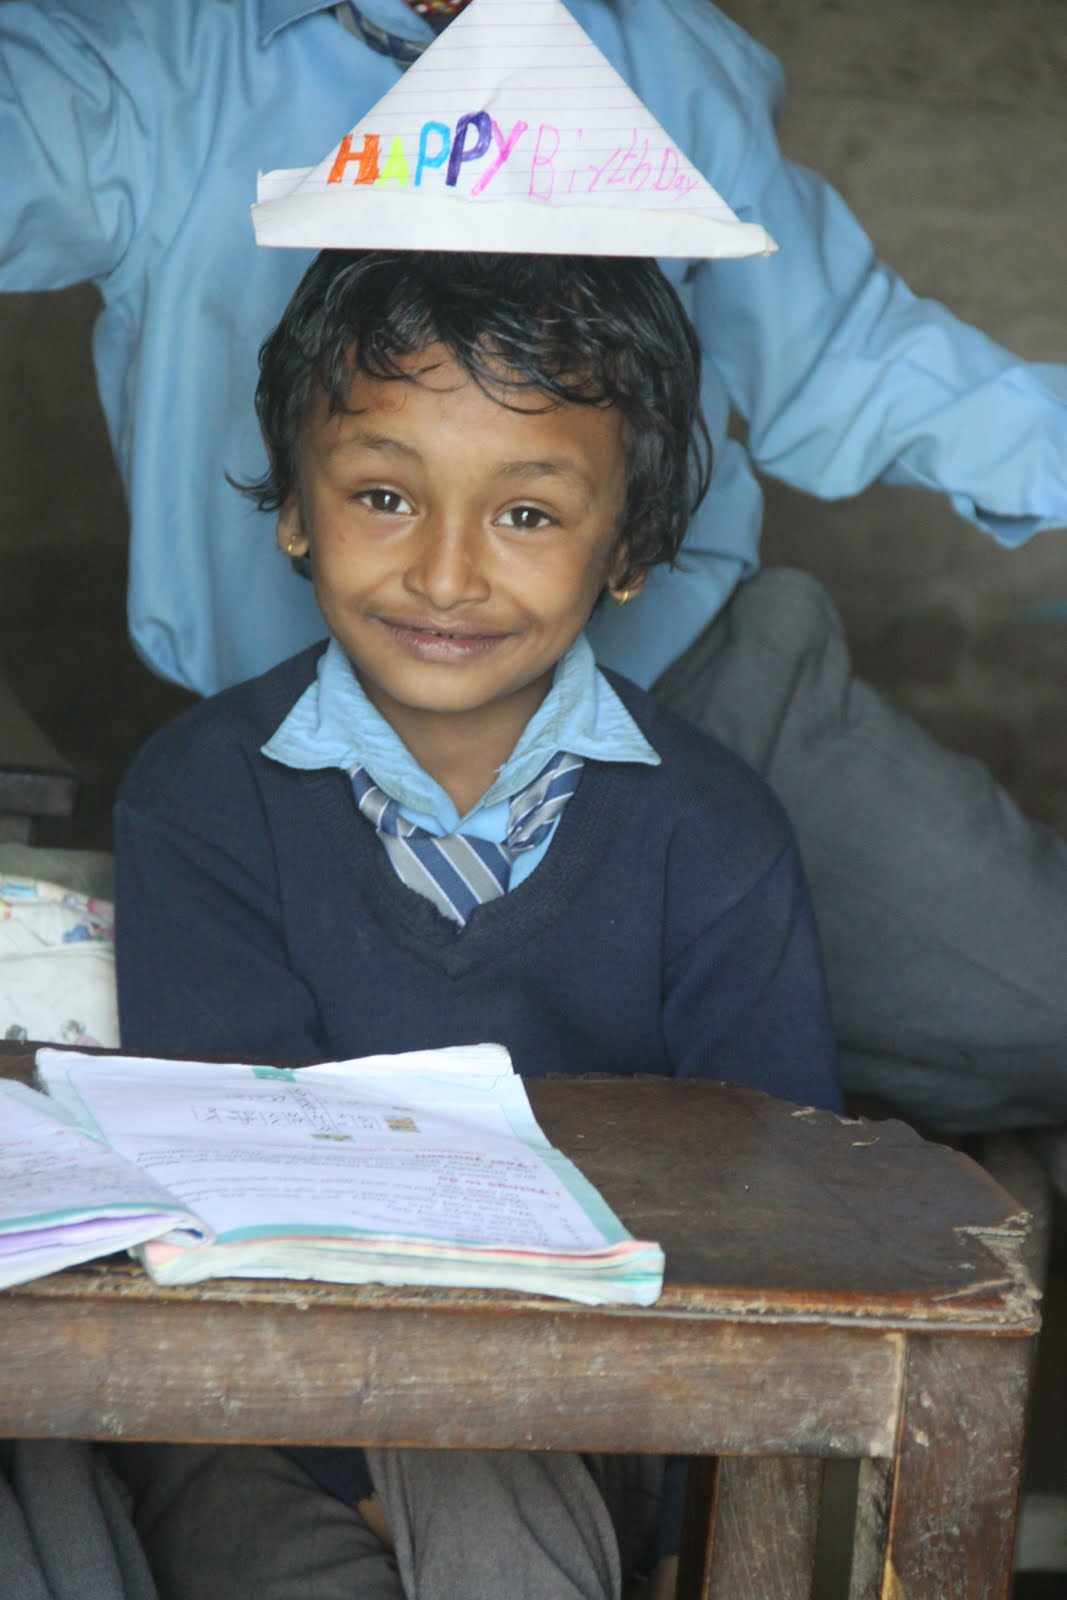 A Happy Student